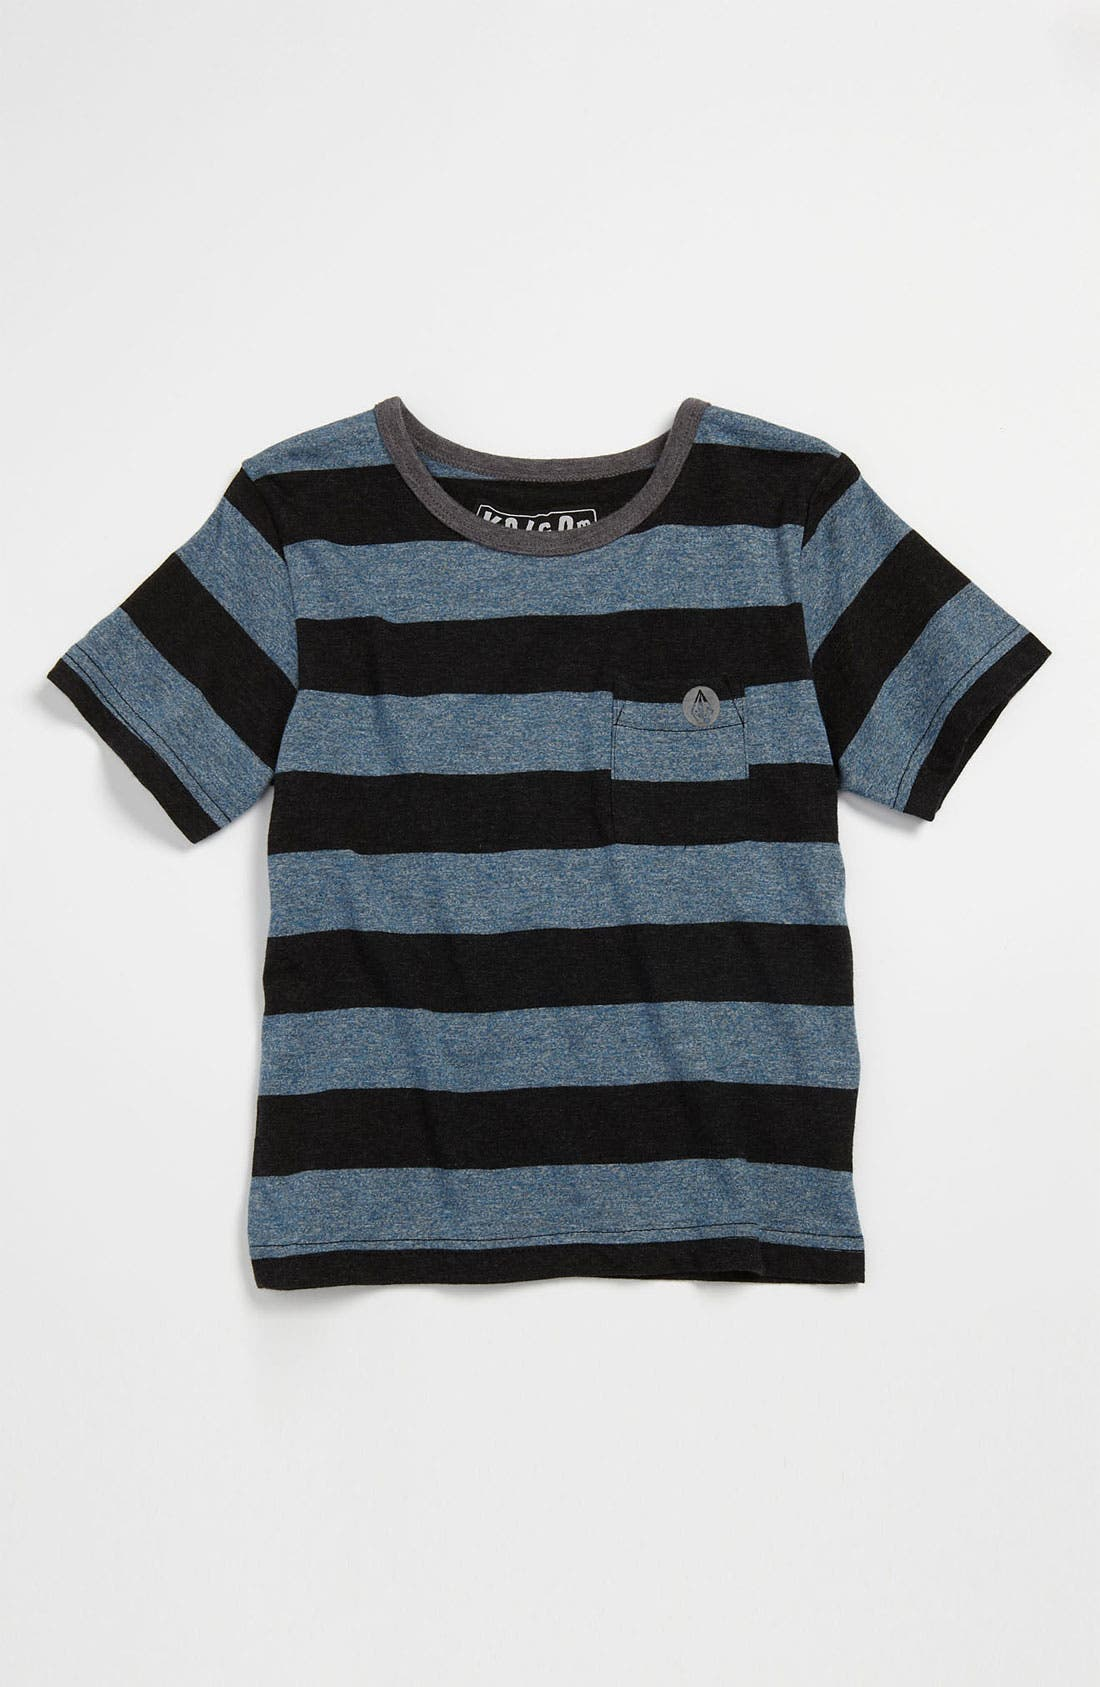 Alternate Image 1 Selected - Volcom 'Fanged Logo' T-Shirt (Toddler)